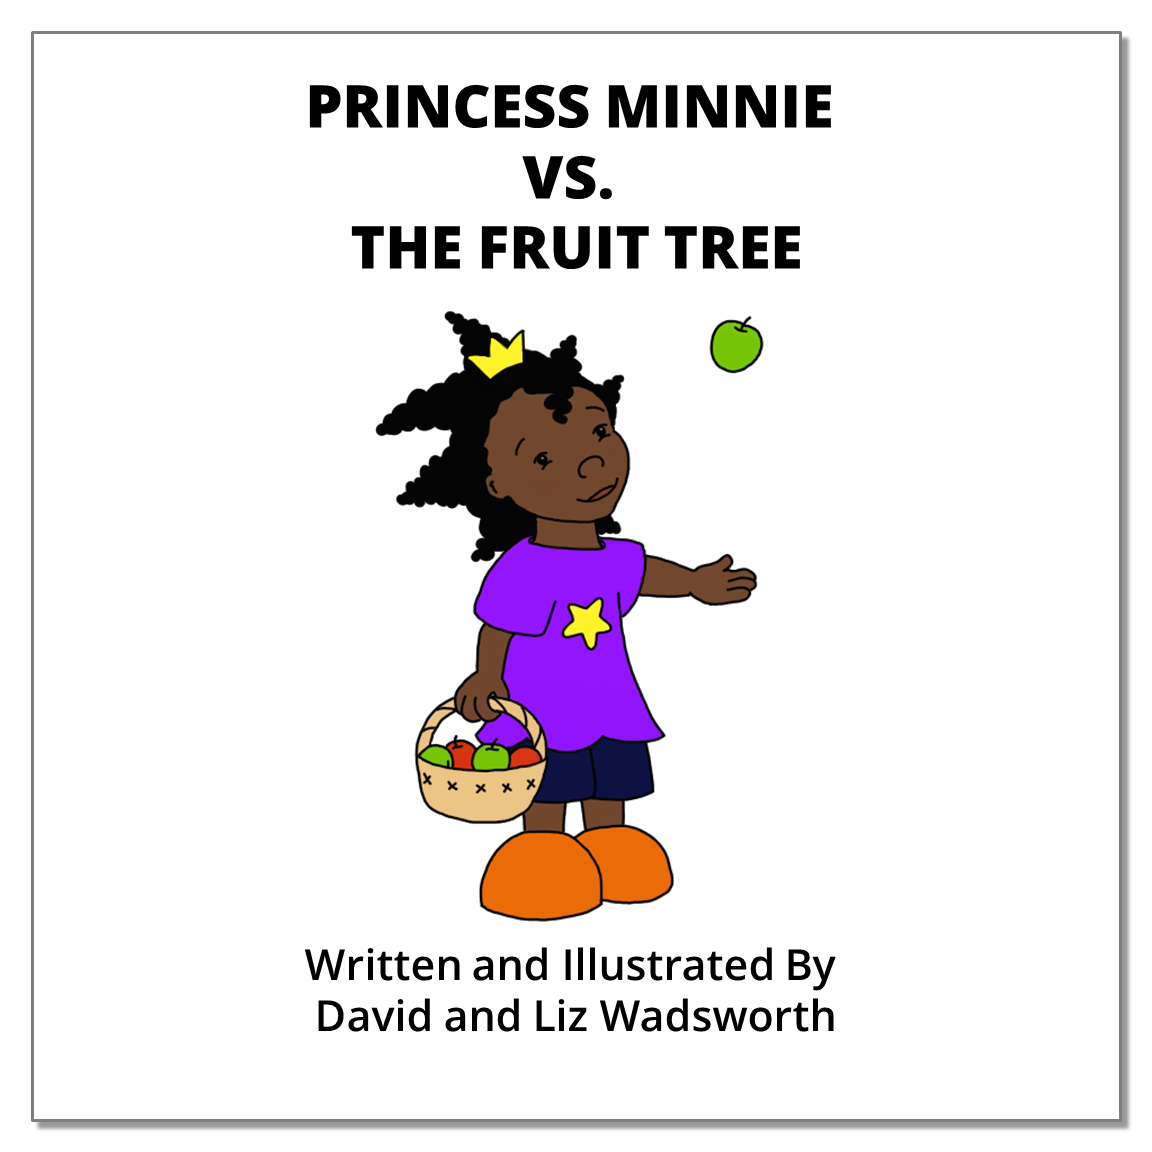 09 - Princess Minnie Vs The Fruit Tree.png